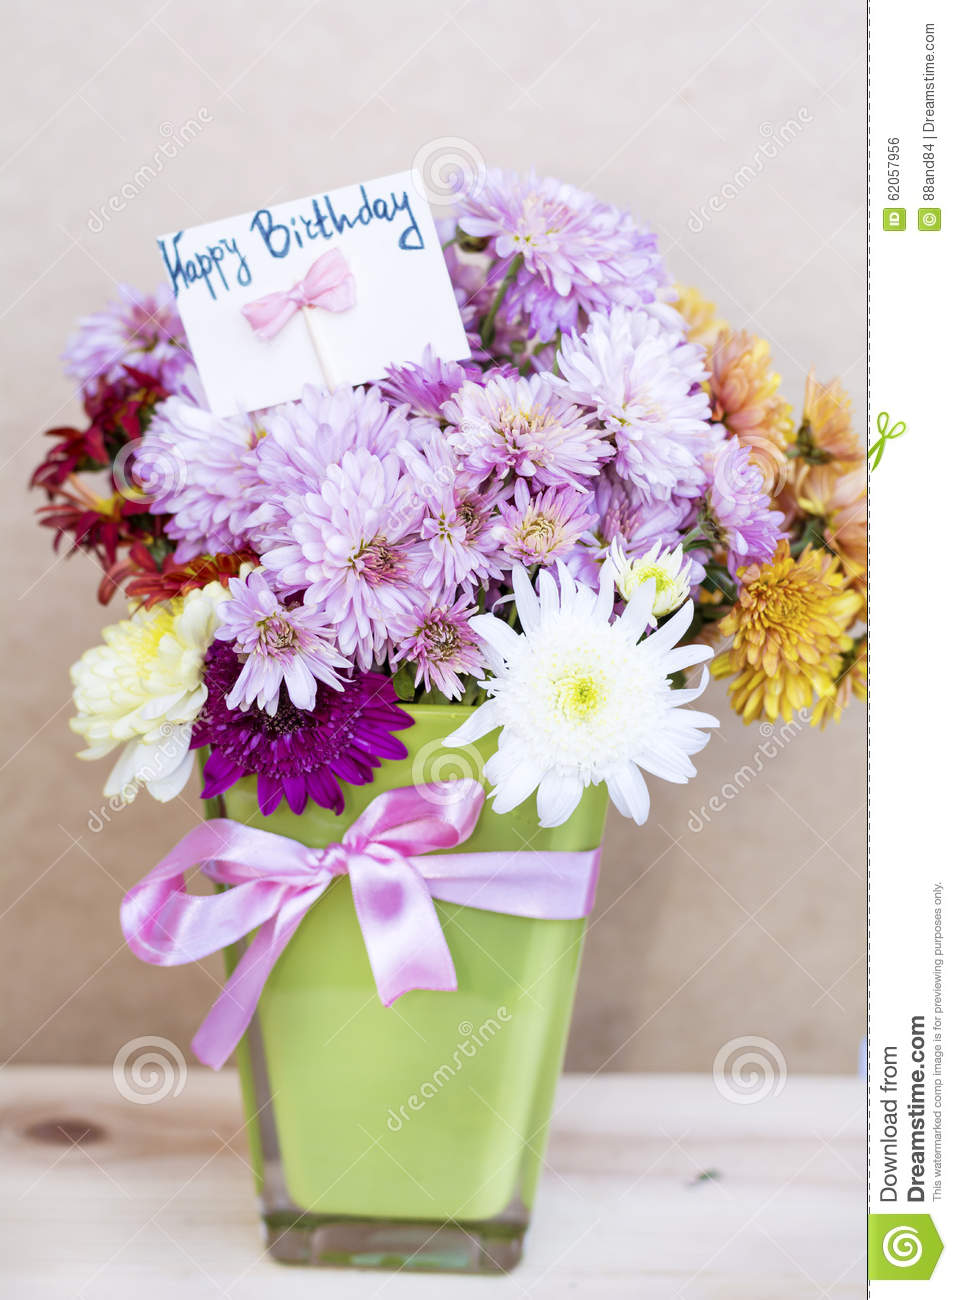 Chrysanthemums Flowers In Green Glass Vase With Happy Birthday Card